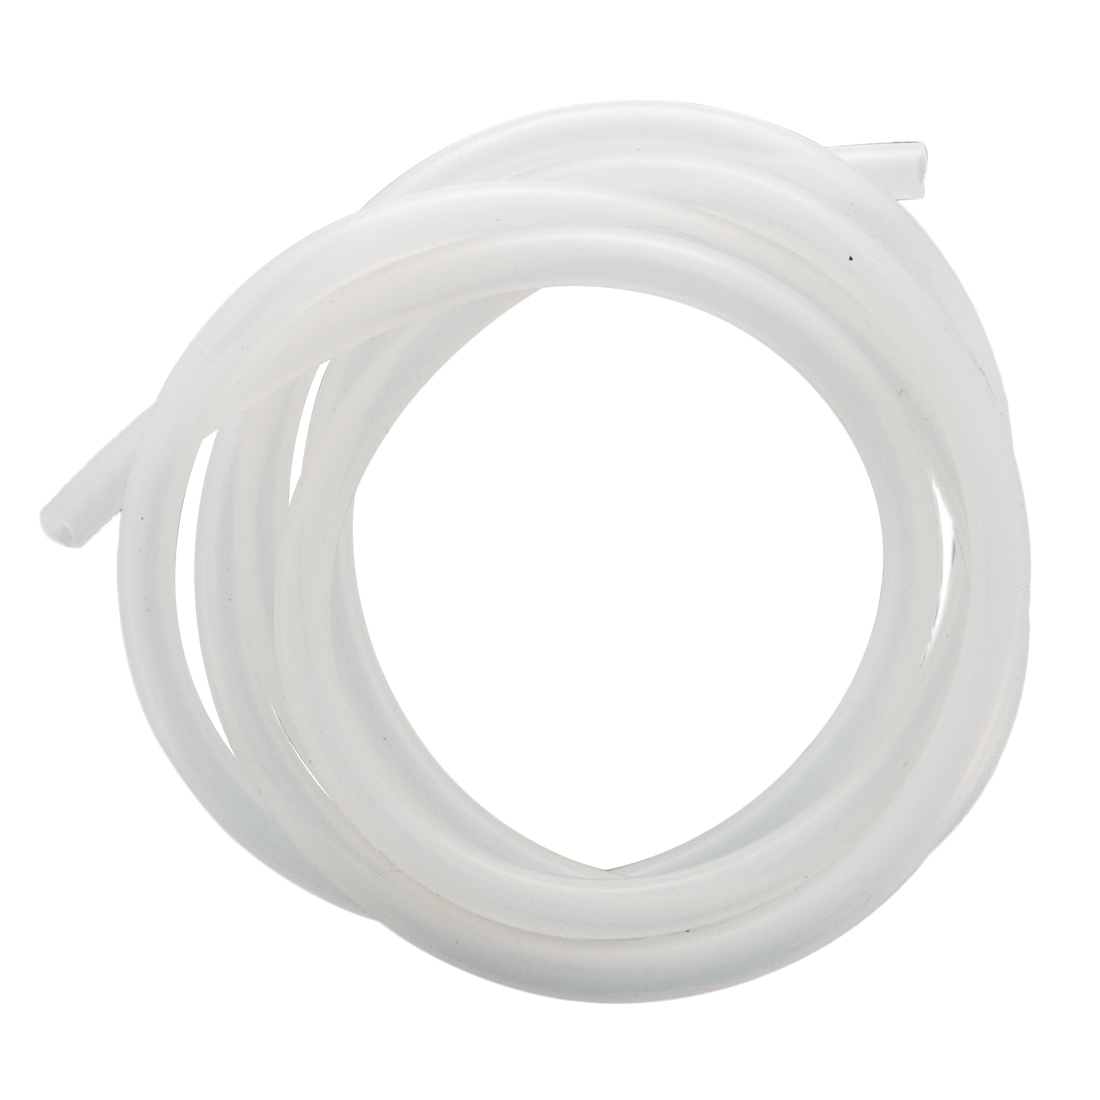 "Medium Silicone Blow Hose (1/4"")"